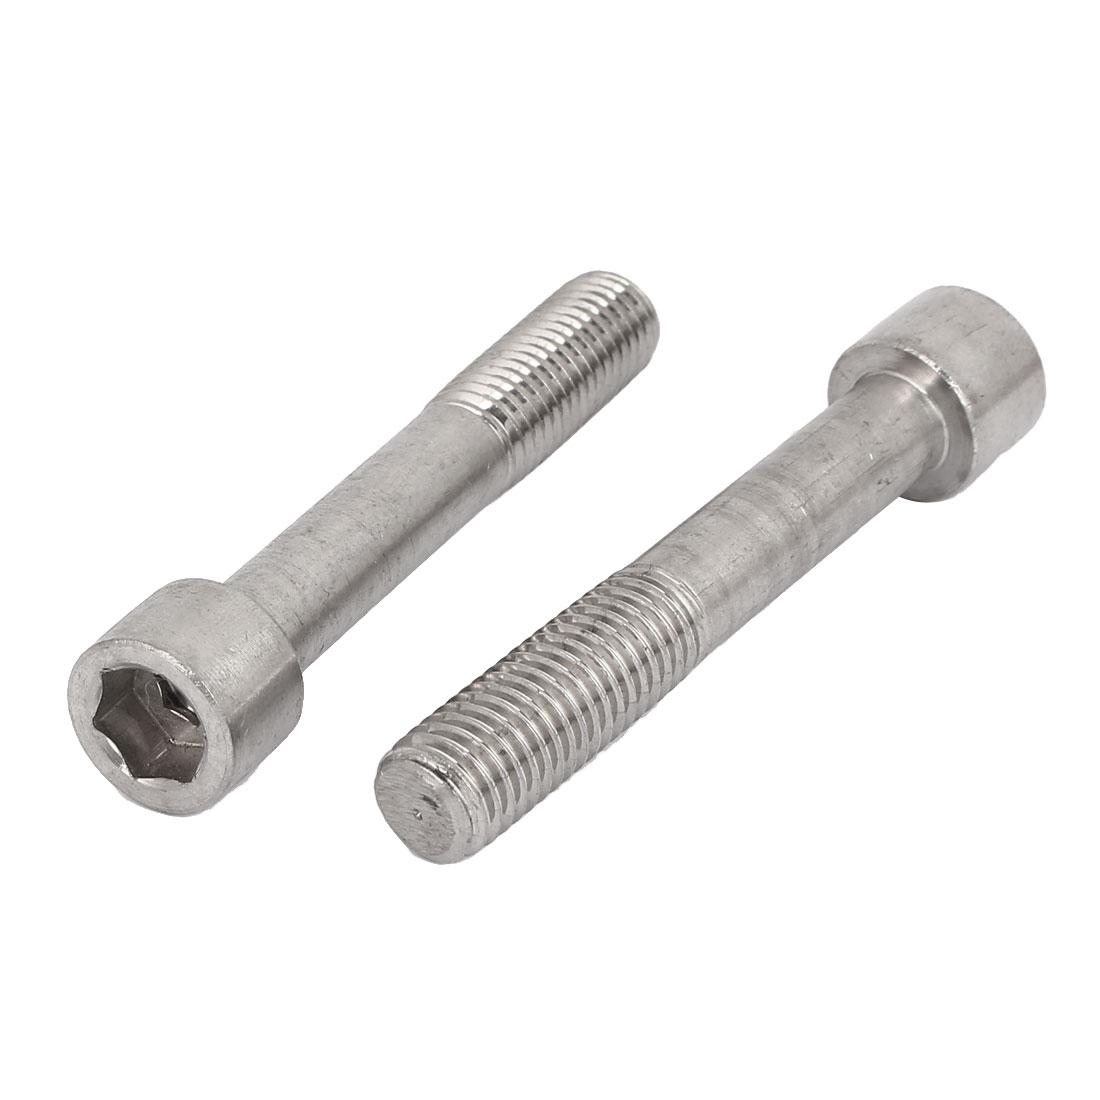 Stainless Steel Hex Socket Head Cap Screw Bolt Silver Tone M14x85mm 2pcs